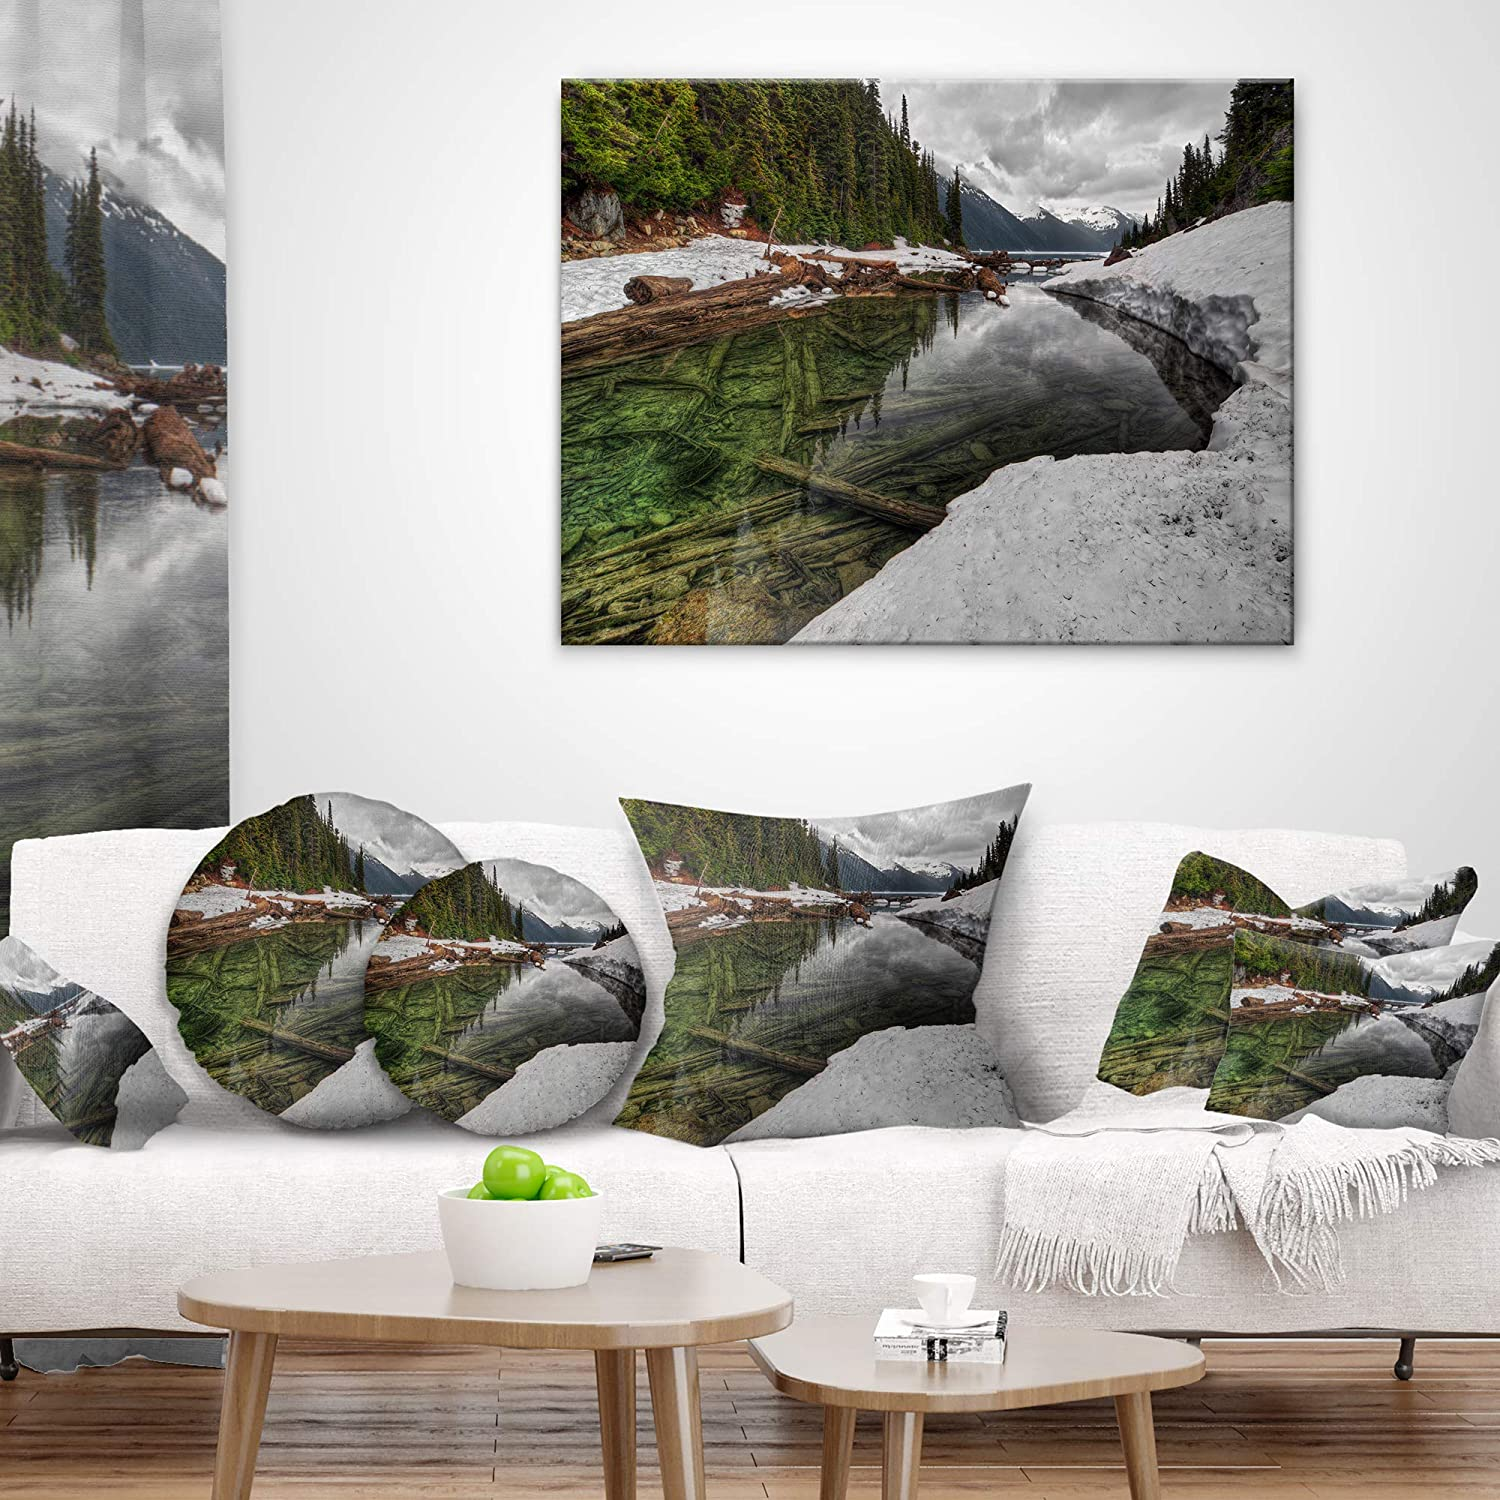 Designart Cu14409 12 20 Crystal Clear Lake With Pine Trees Landscape Printed Lumbar Cushion Cover For